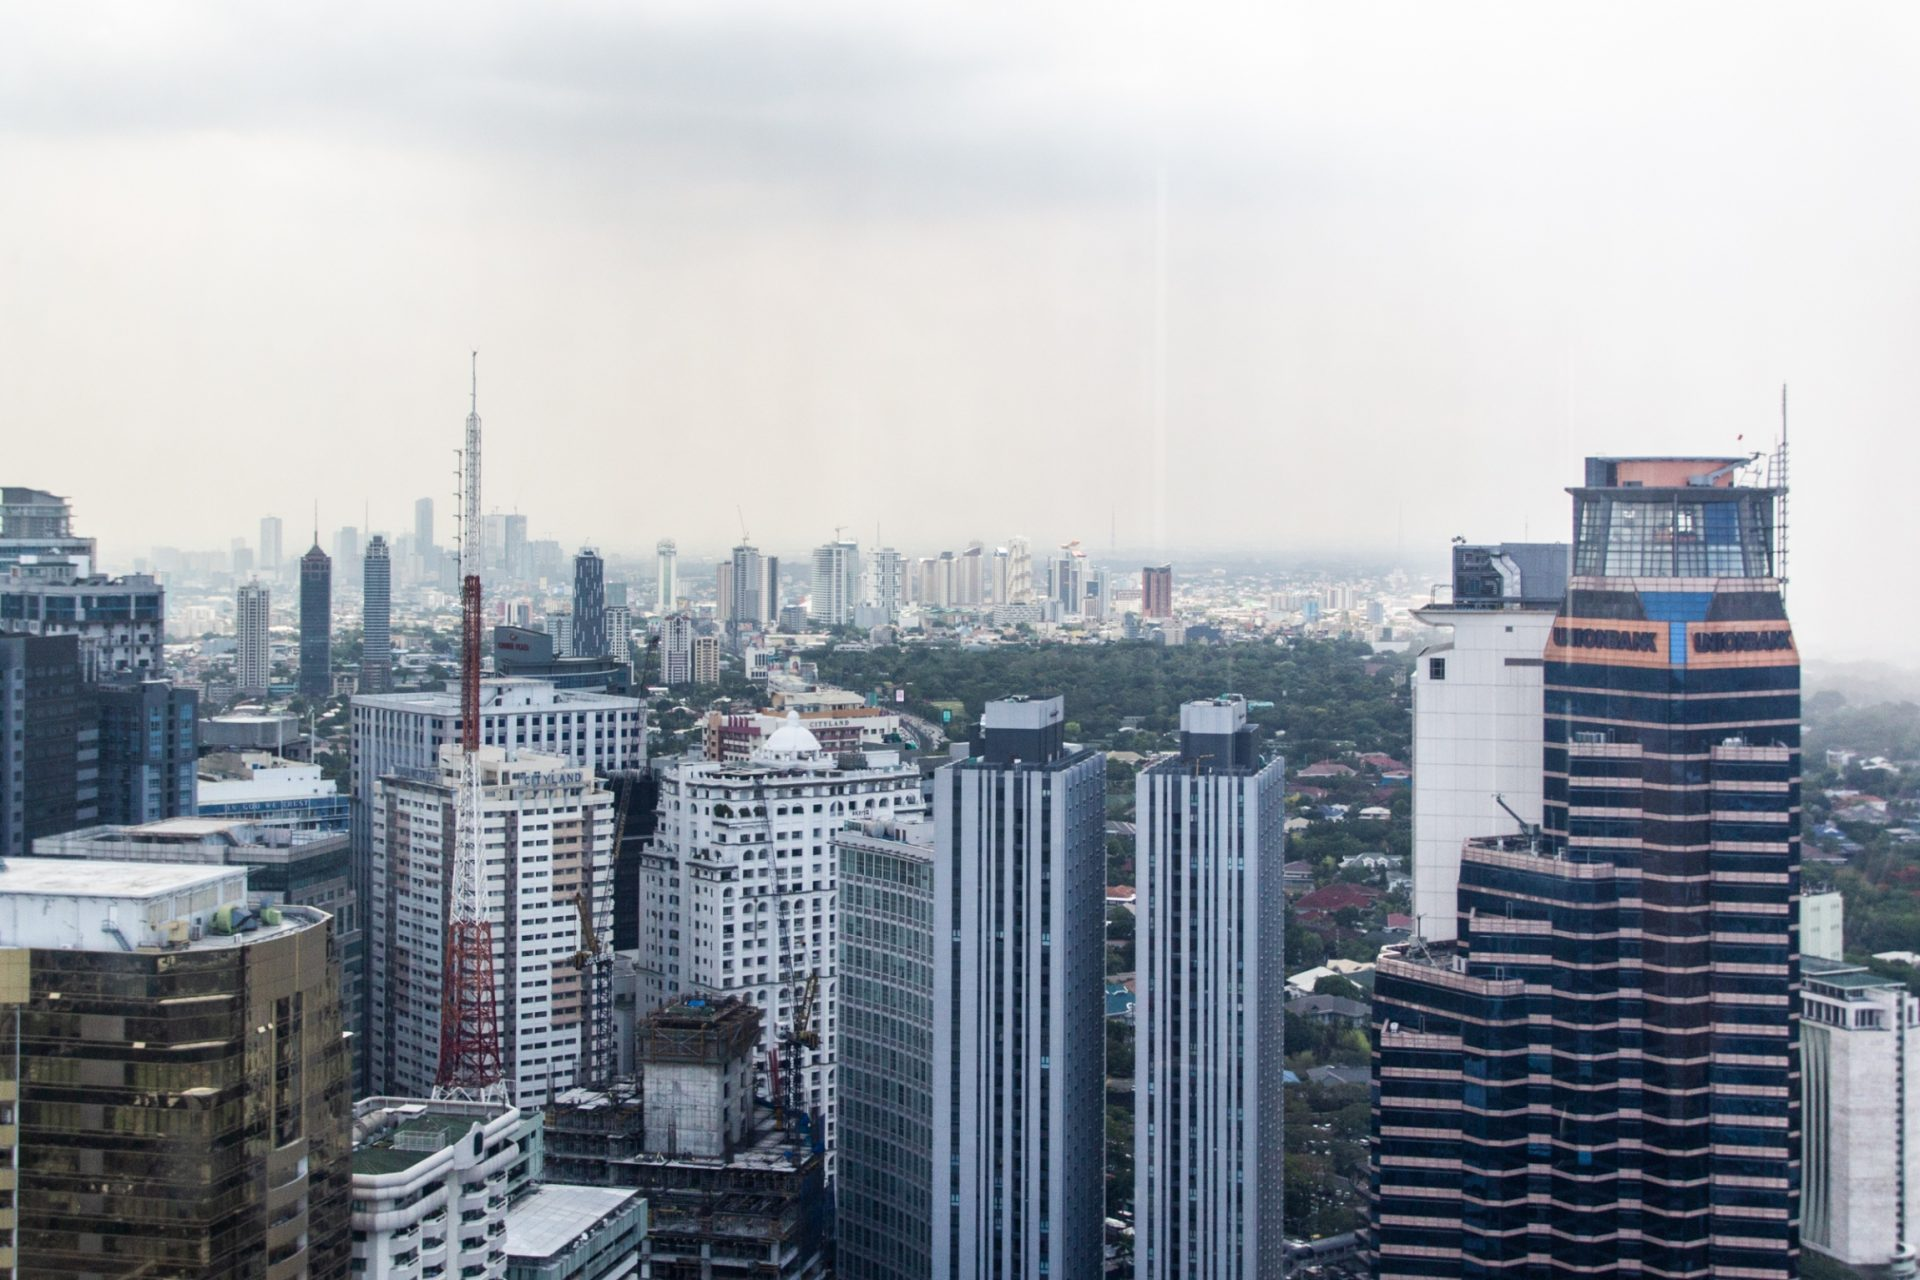 High View Of Tall Buildings In City